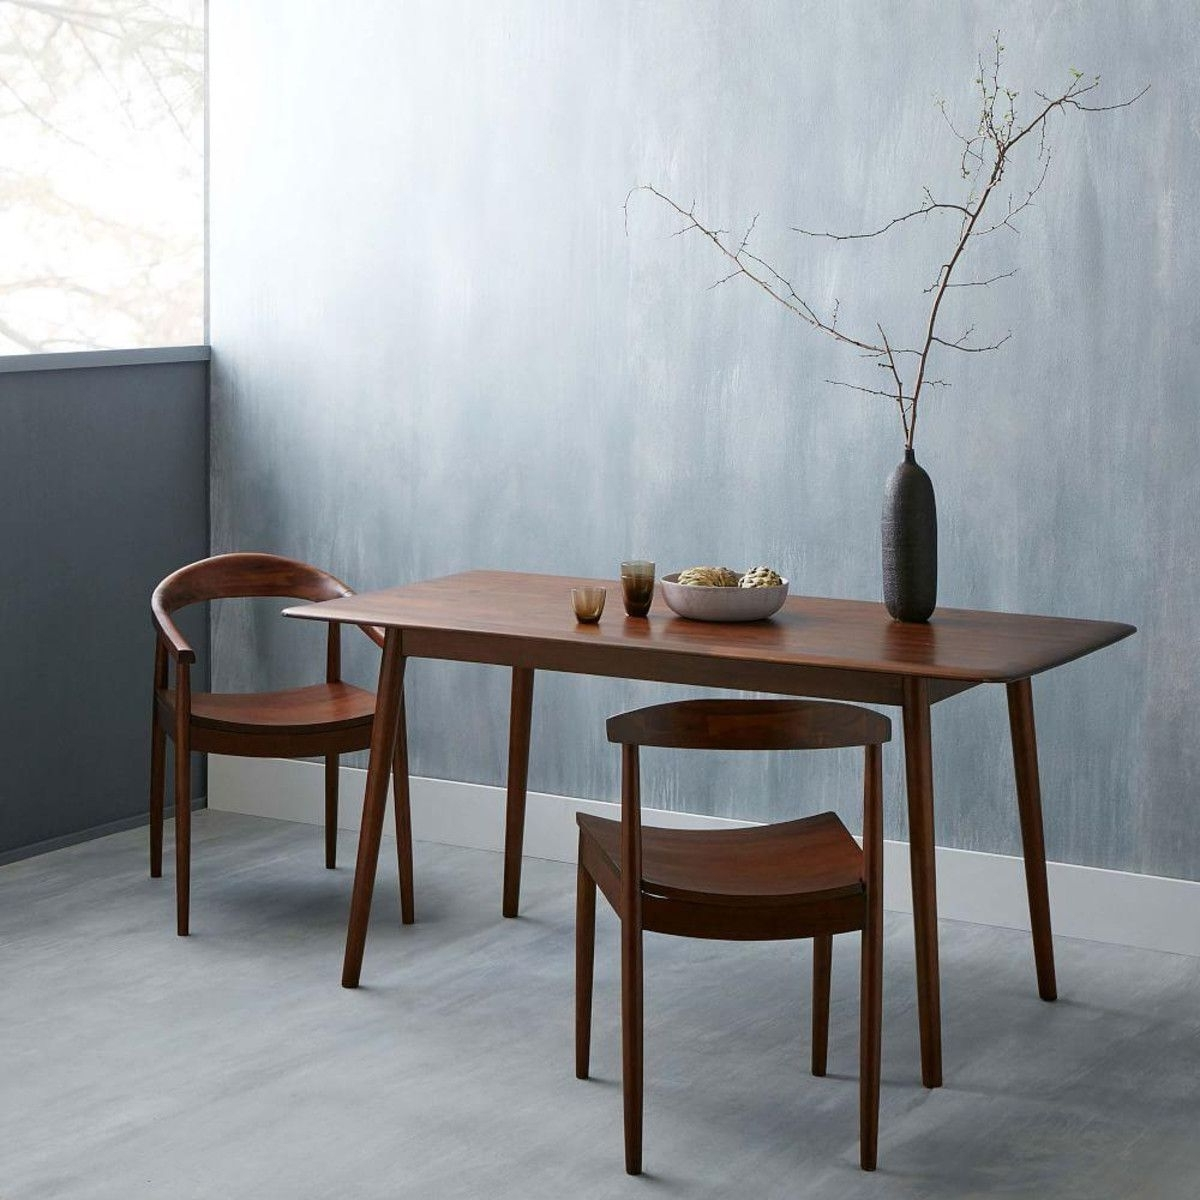 2018 Stunning Modern Dining Table West Elm Sussex Gumtree Chairs Republic inside Hayden Dining Tables